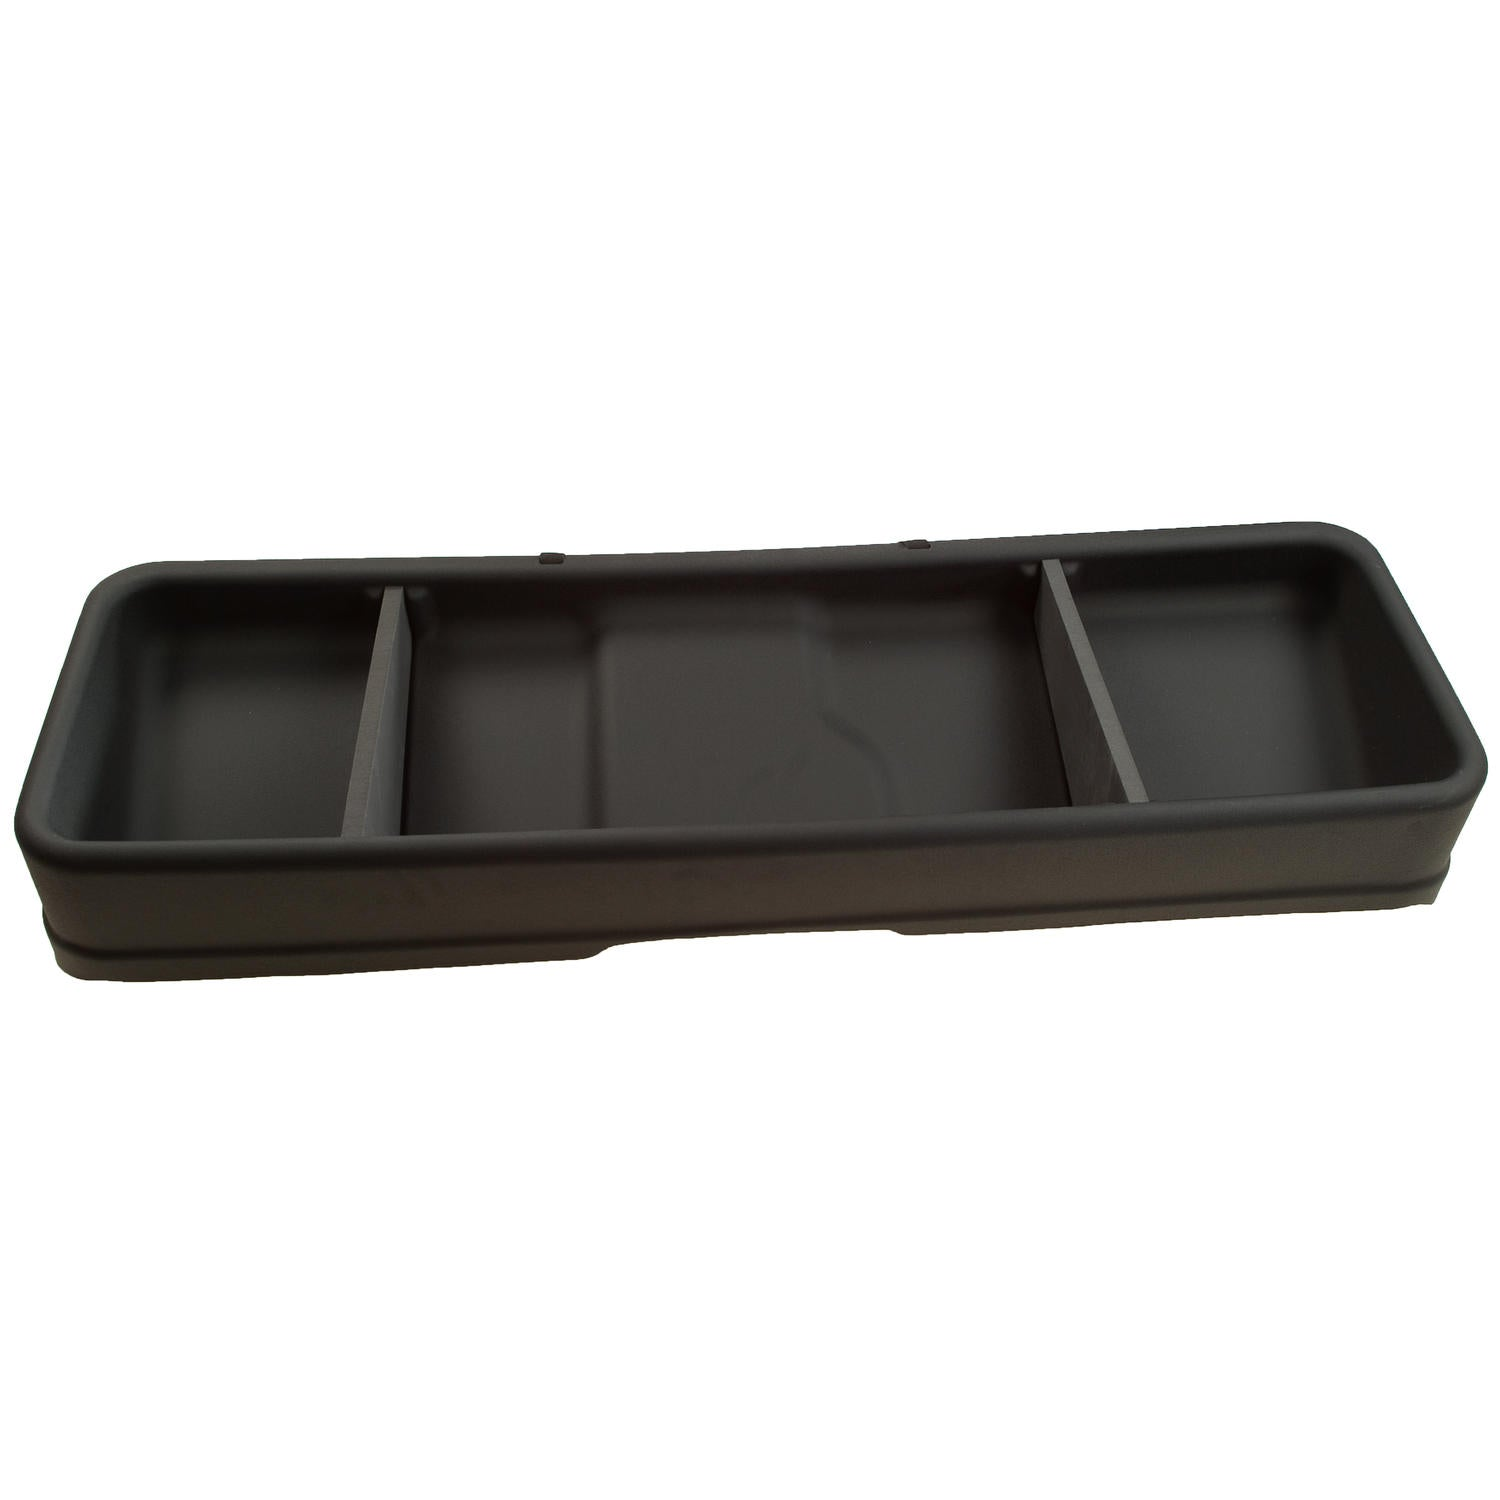 2007-2013 Chevrolet Silverado 1500 Crew Cab Pickup Under Seat Storage Box